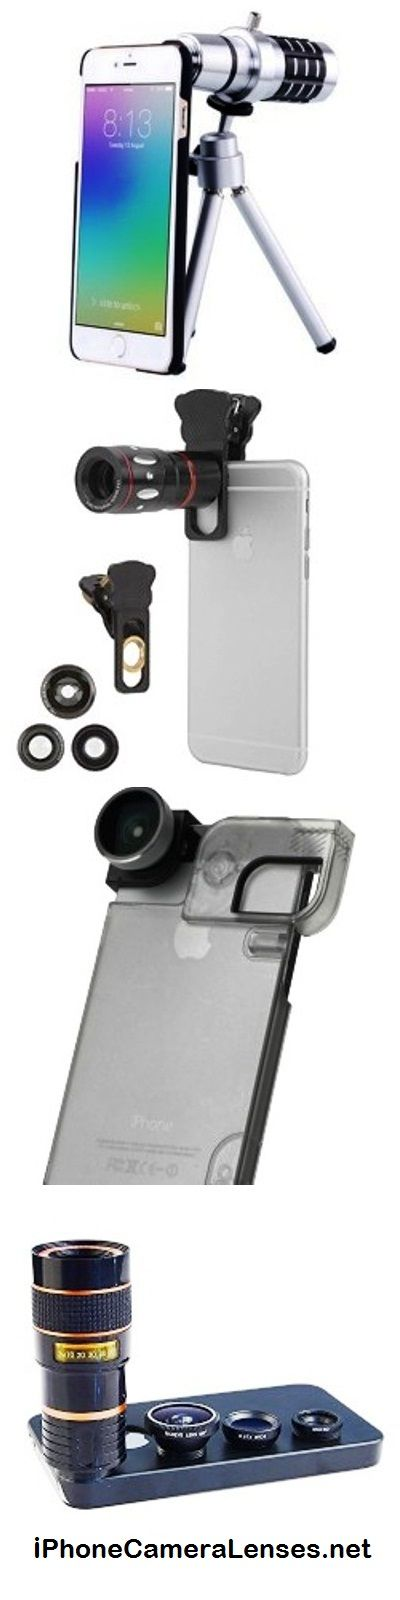 380 Best Images About Gadgets On Pinterest Technology